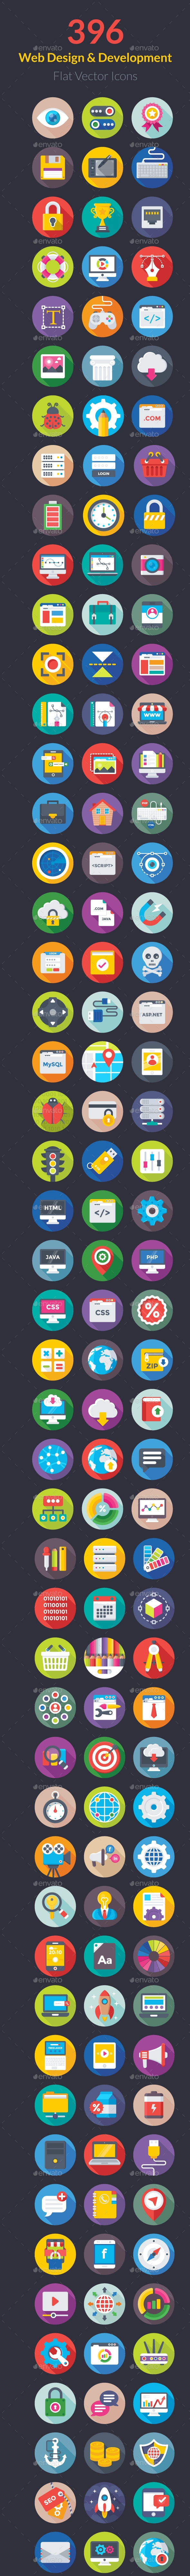 396 Web Design and Development Icons - Icons